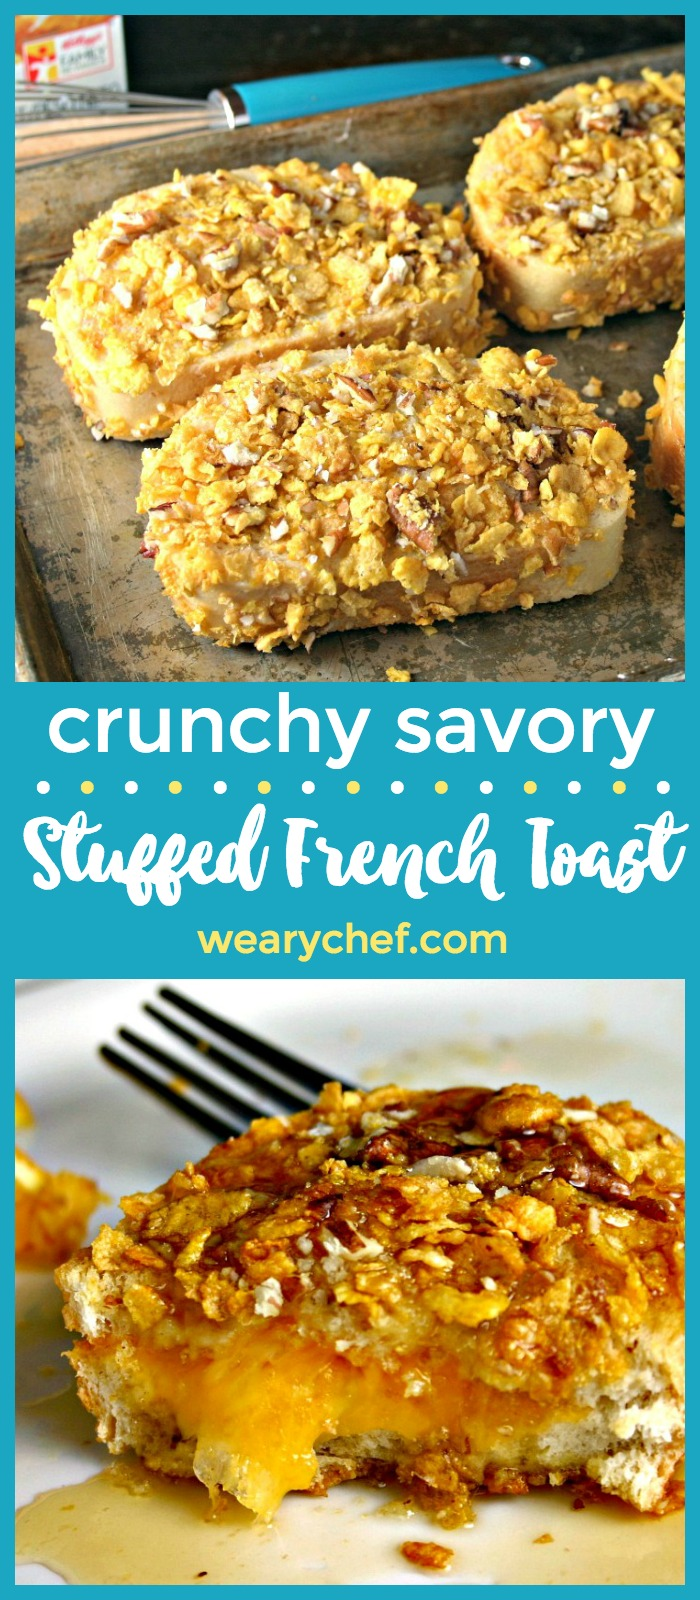 You've never seen anything like this crunchy french toast recipe stuffed with cheese and coated with crunchy pecans and corn flakes!